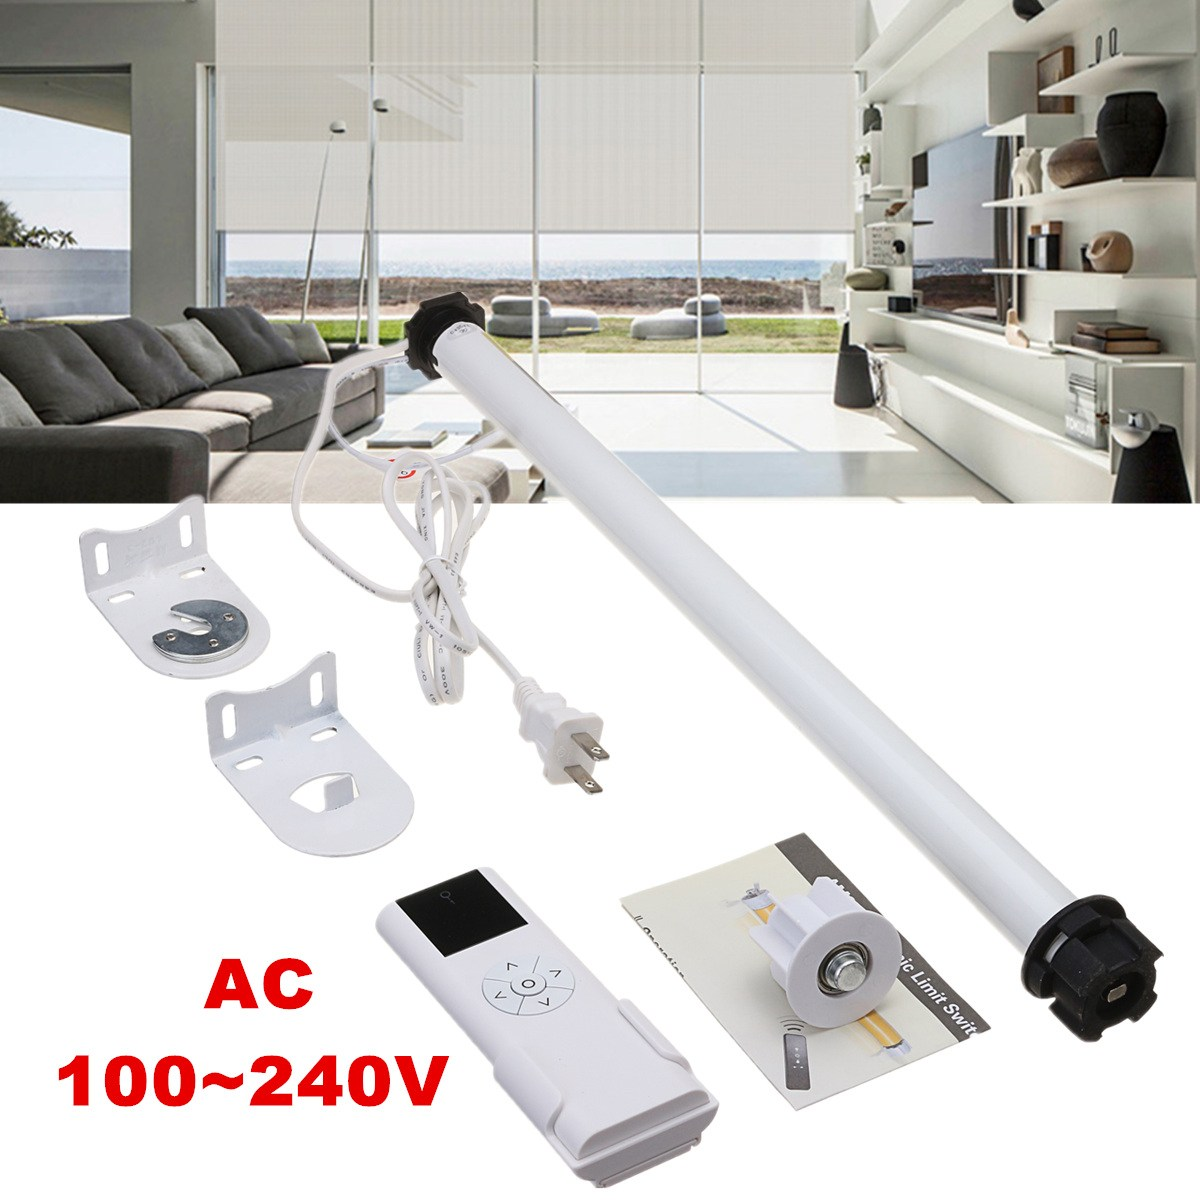 AC 100-240V DIY Electric Roller Shade Tubular 25mm Motor with Remote Control Home Decoration for Curtain Shade Roller Blinds